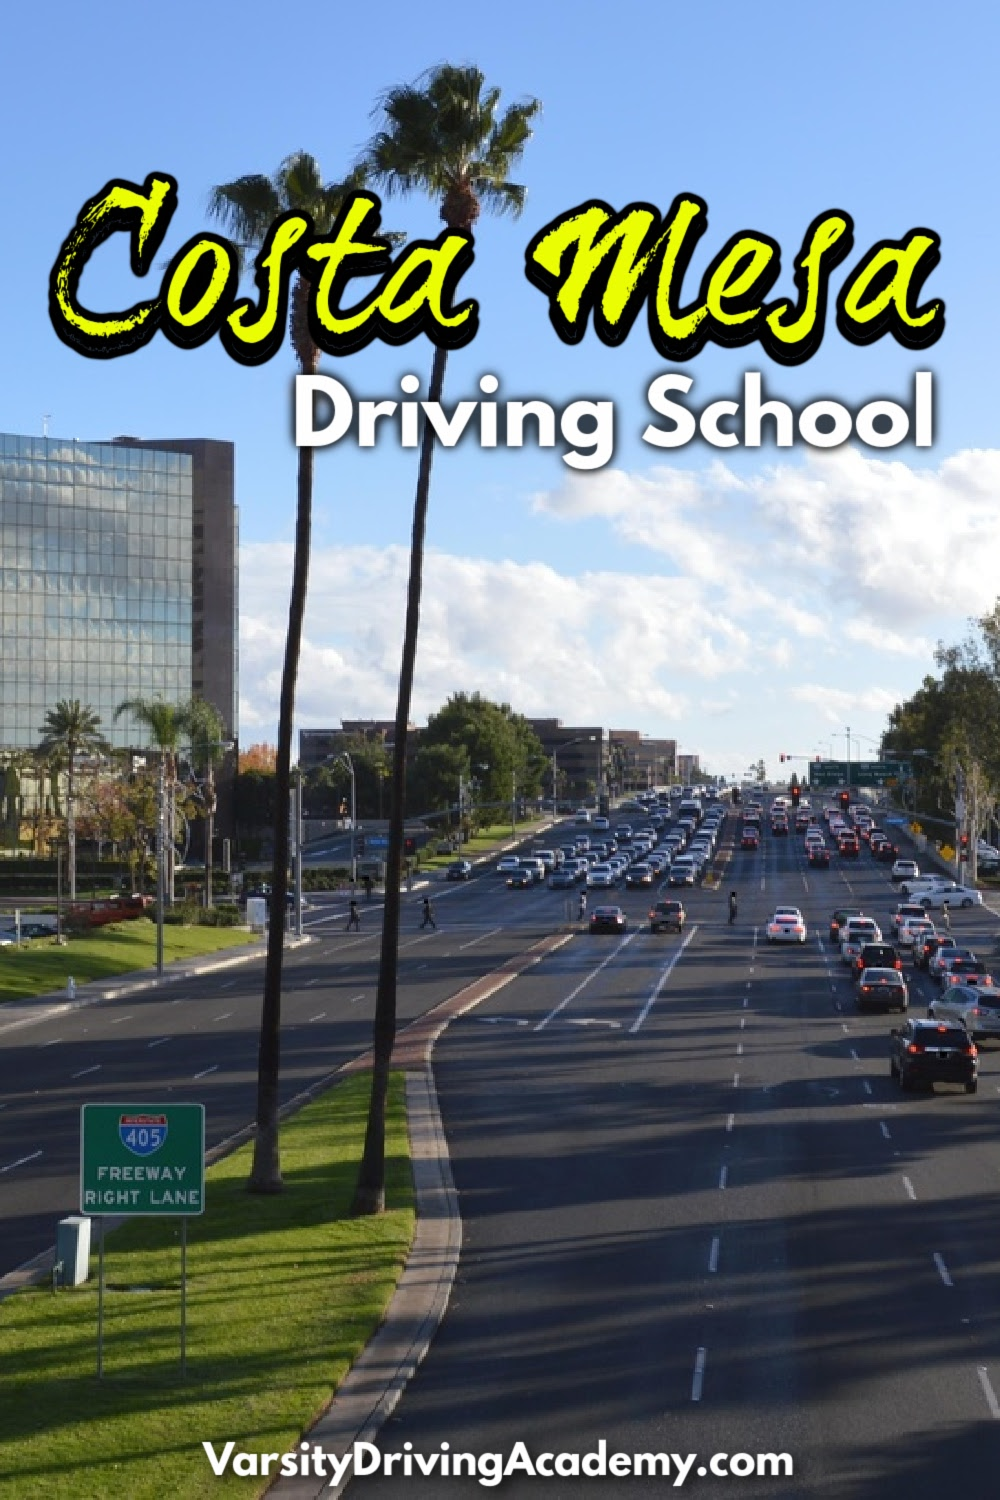 Varsity Driving Academy is the best Costa Mesa driving school where students learn how to drive safely and confidently.